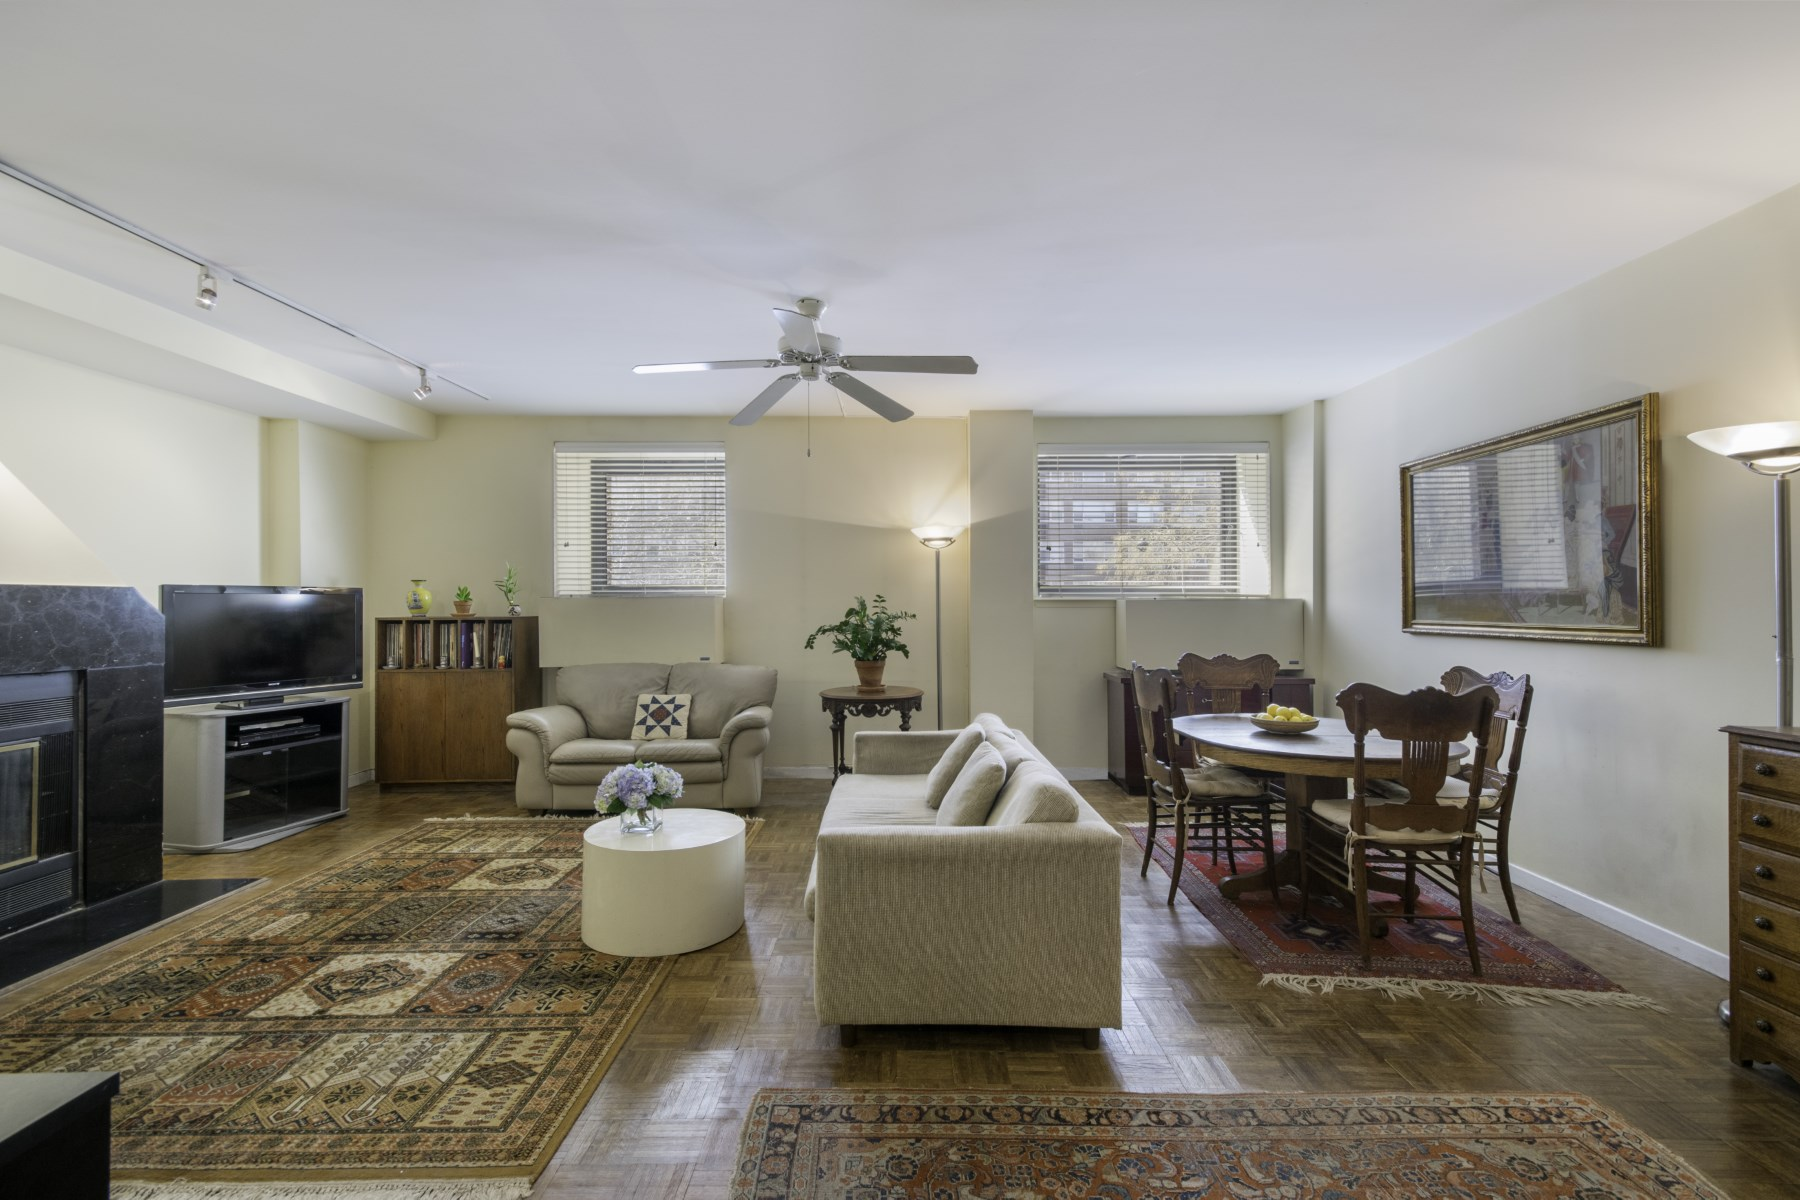 Co-op for Sale at 196 Sixth Avenue Apt. 2A3A 196 Sixth Avenue Apt 2A3A Soho, New York, New York, 10013 United States